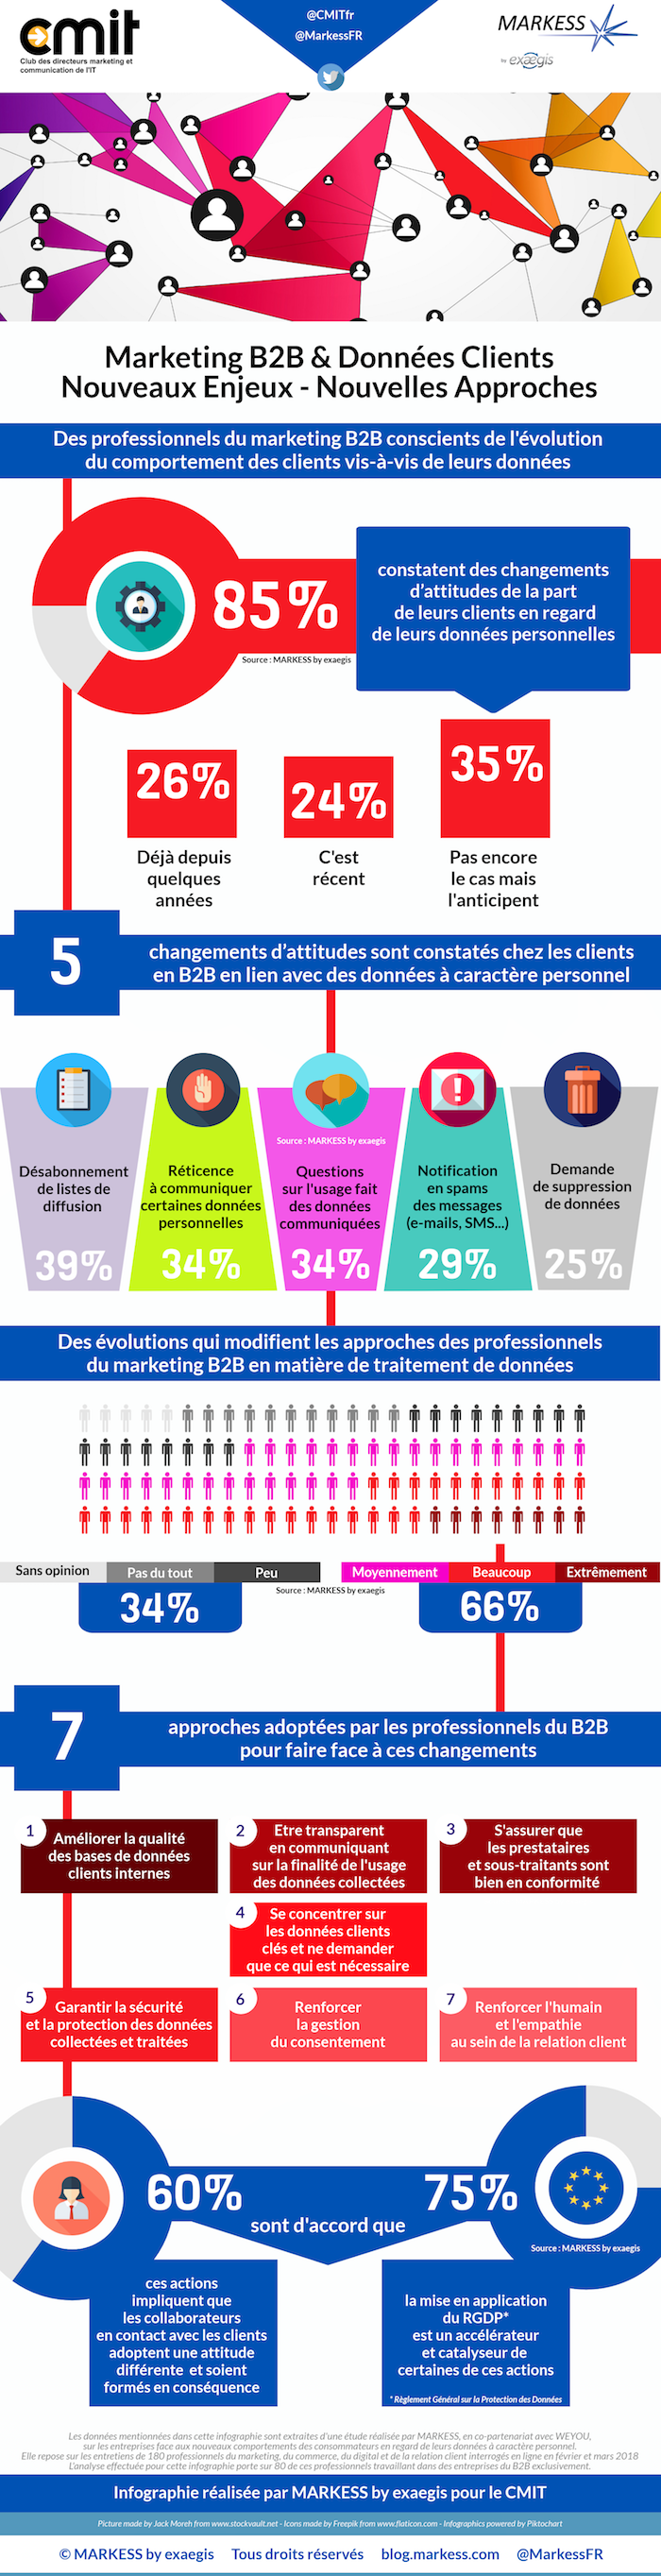 MARKES PRG CMO INFOGRAPHIE CMIT OCT 18 FINAL 3